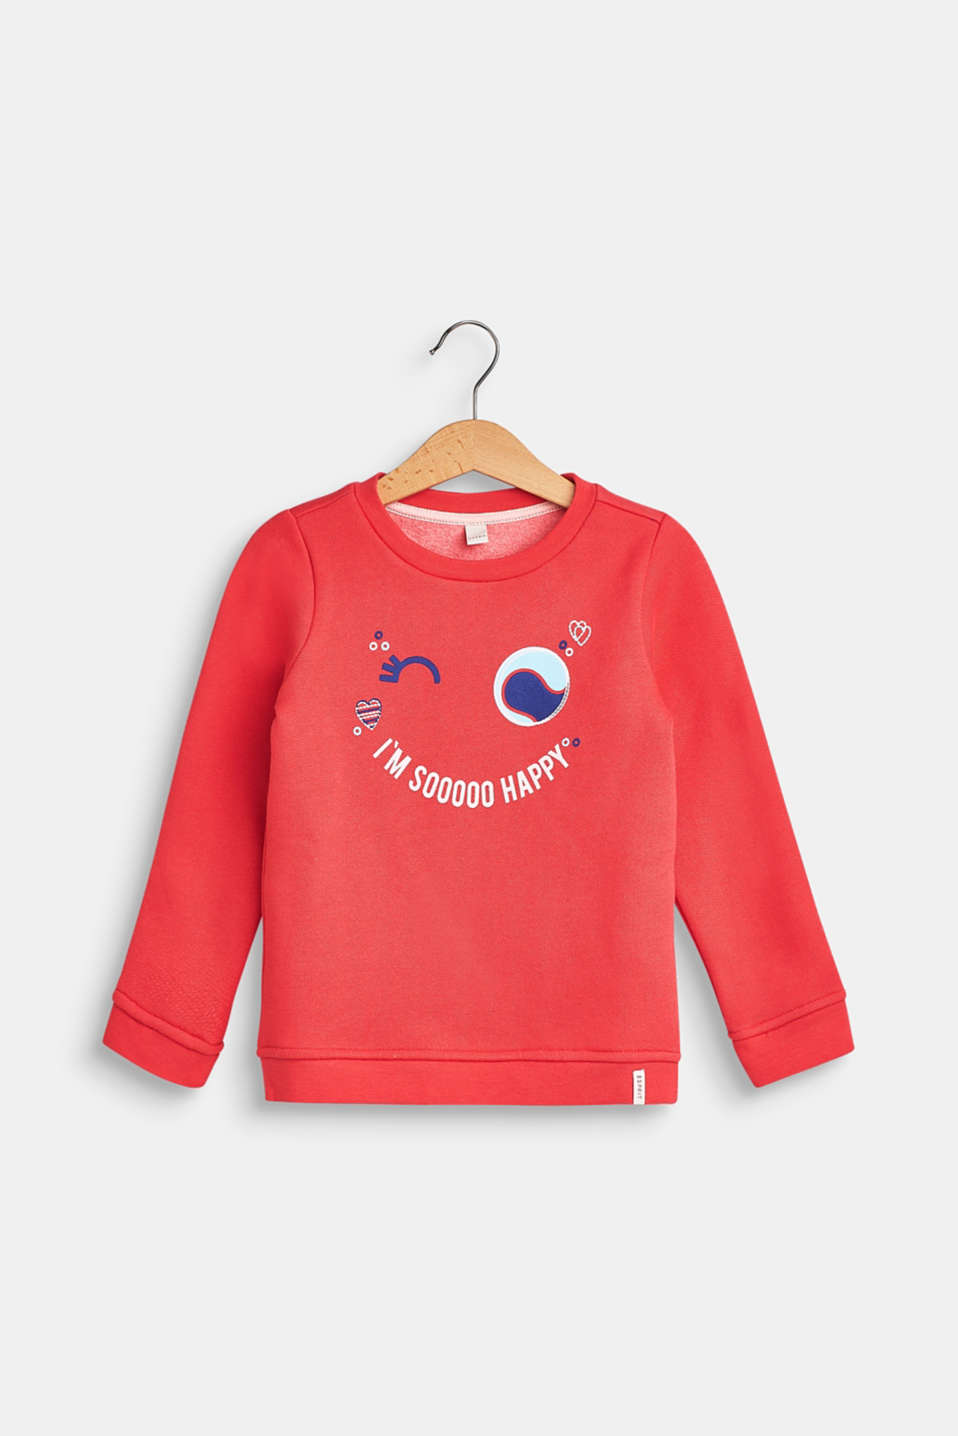 Statement print sweatshirt, STRAWBERRY, detail image number 0